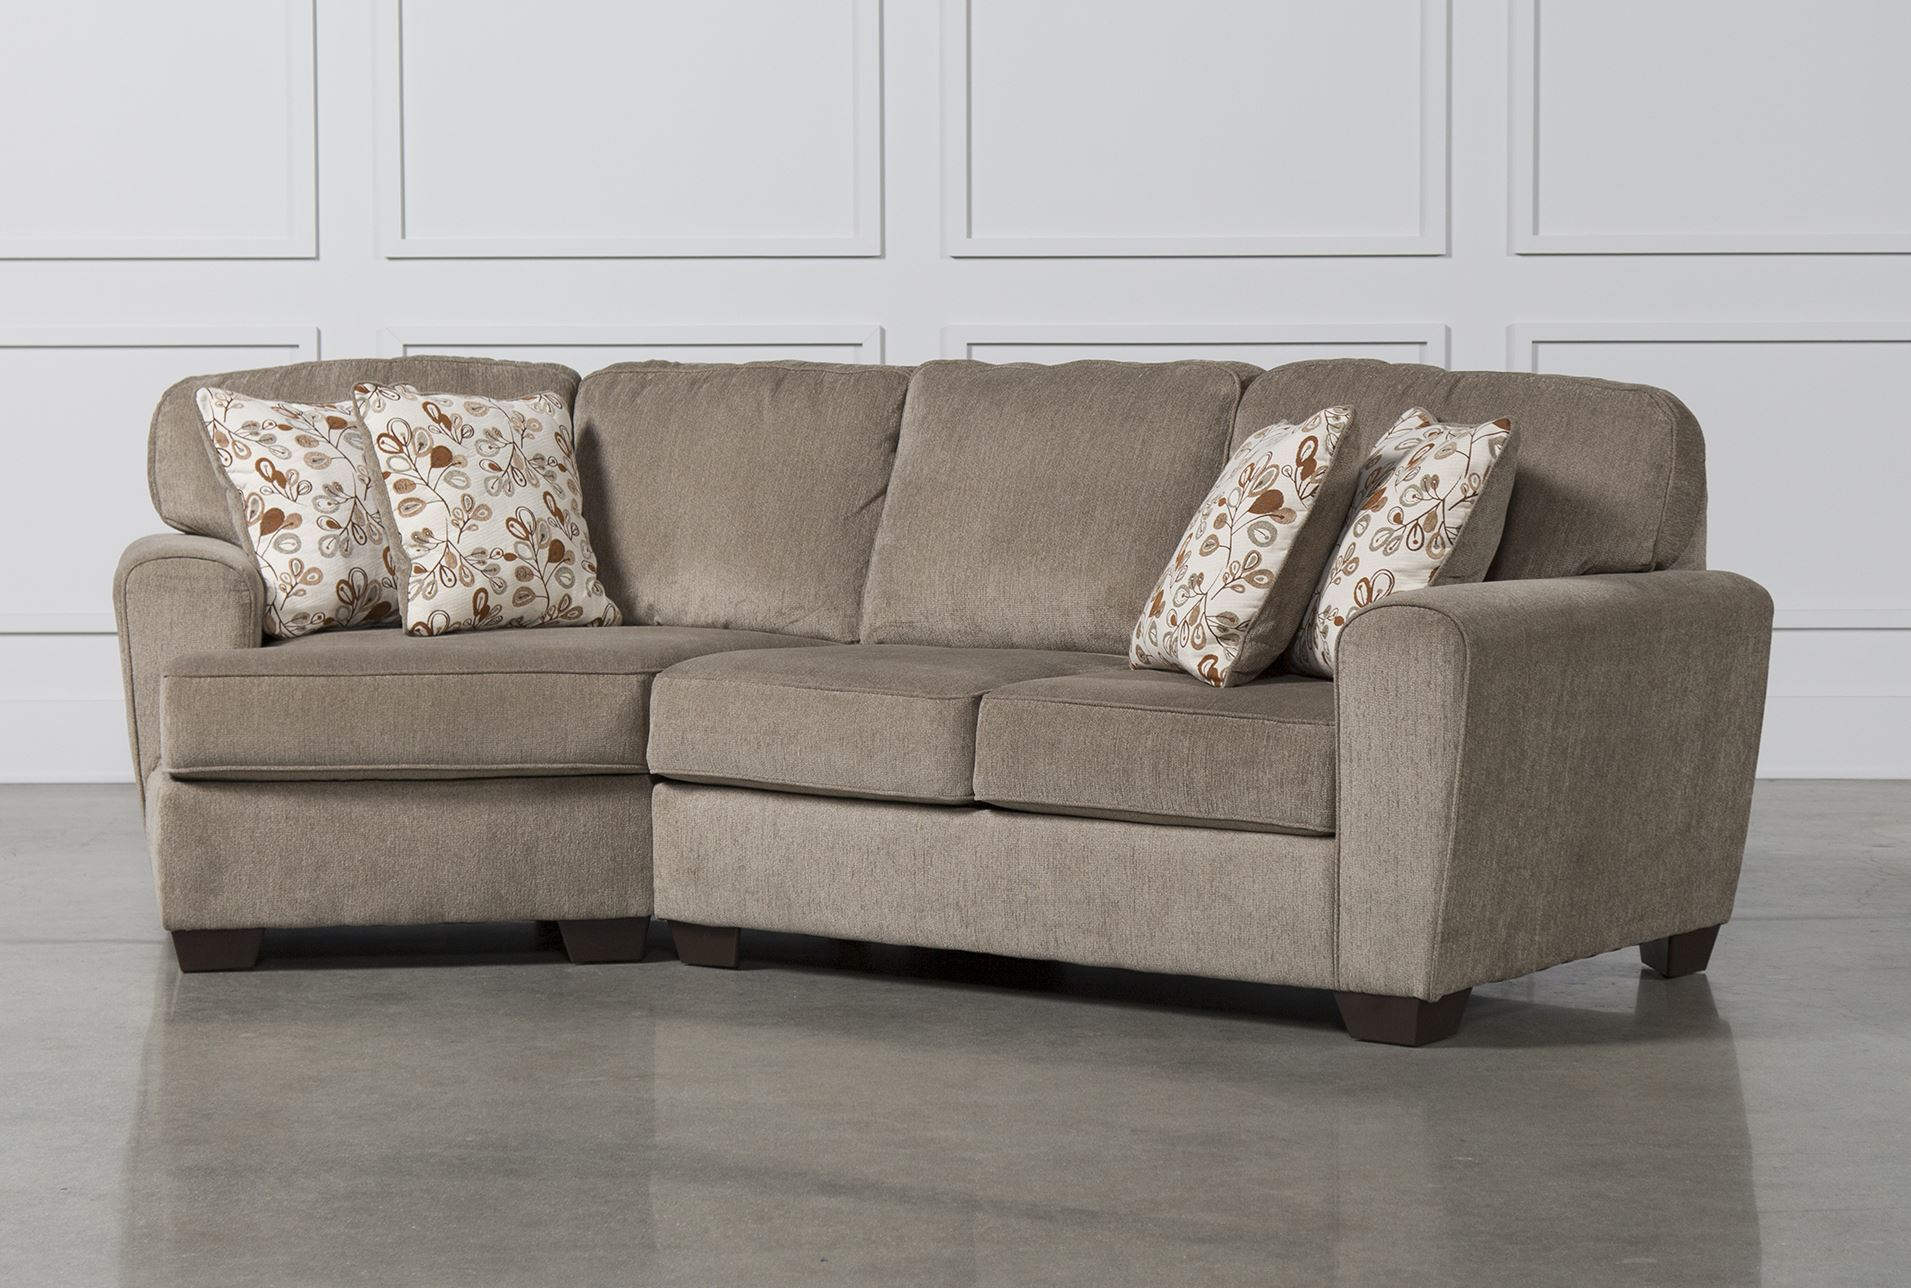 Patola park 2 piece sectional w laf cuddler chaise for Sectional sofa with cuddler and chaise